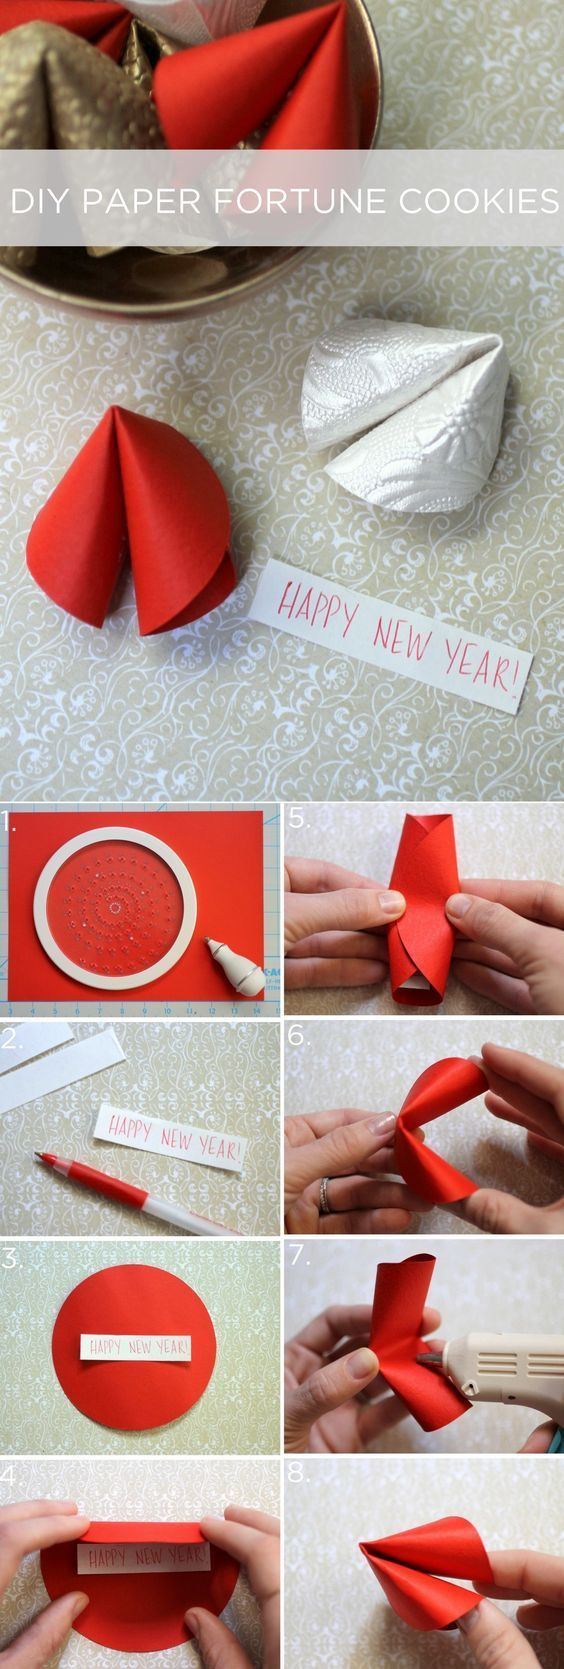 Paper fortune cookies. Valentine's Day care packages